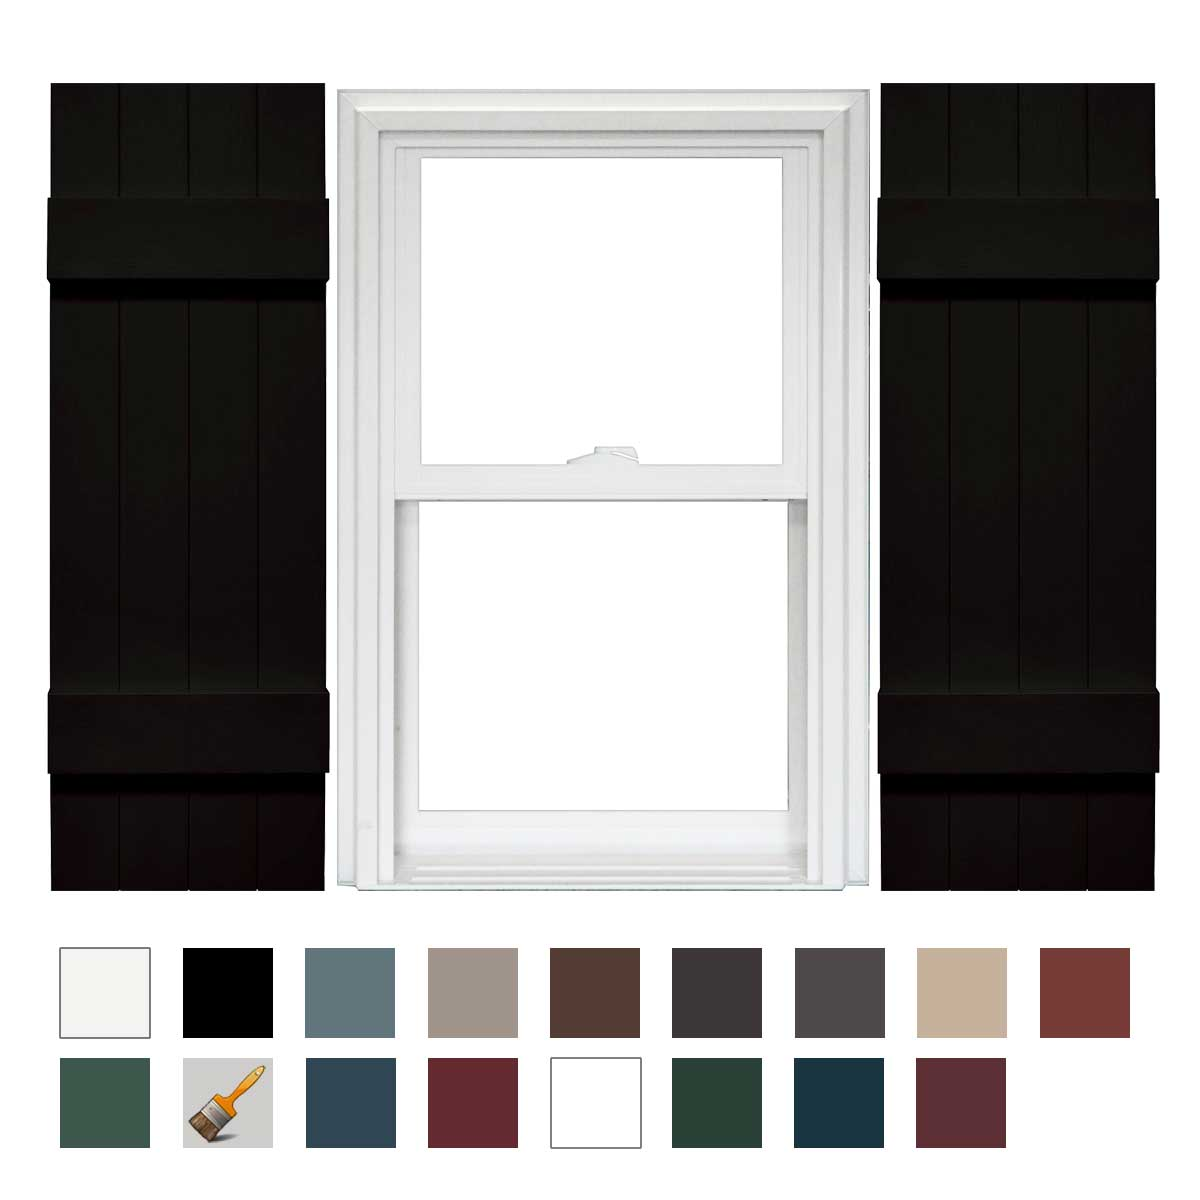 Mid america board n batten 4 board joined vinyl shutters - Board n batten exterior shutters ...